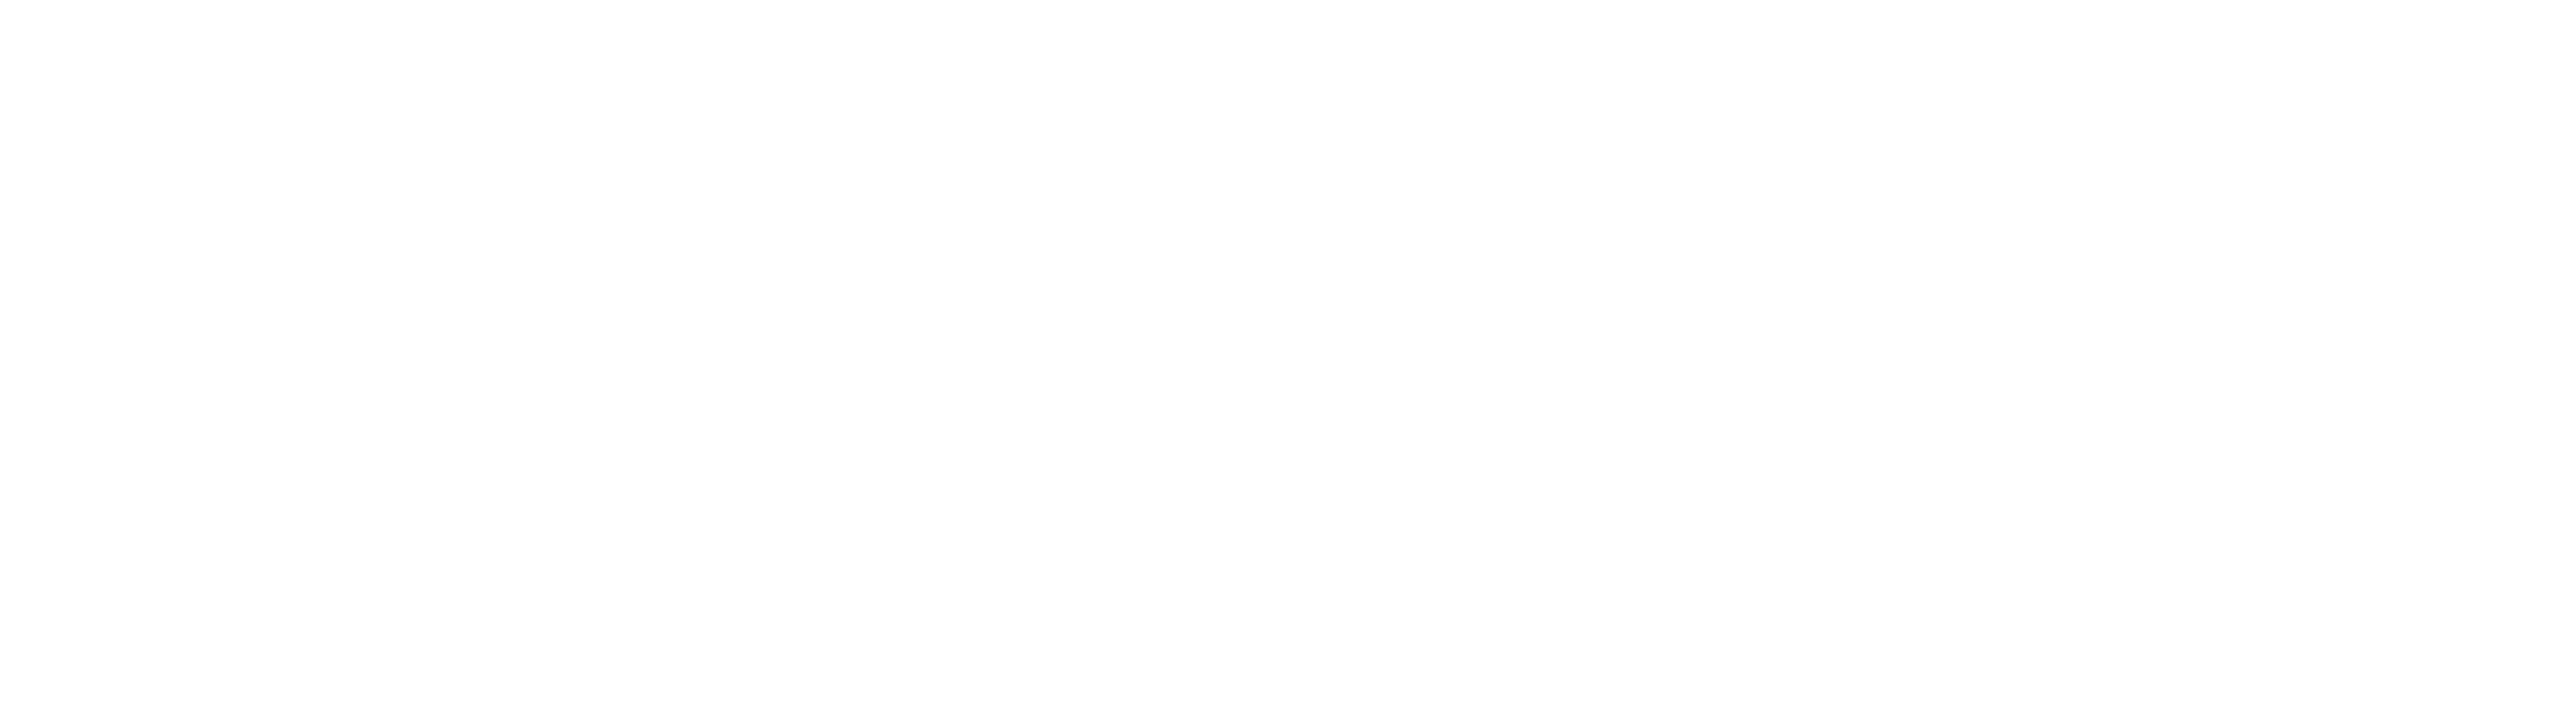 Kawartha Lakes Classic Flowers & Gifts - Flower Delivery in Lindsay, ON